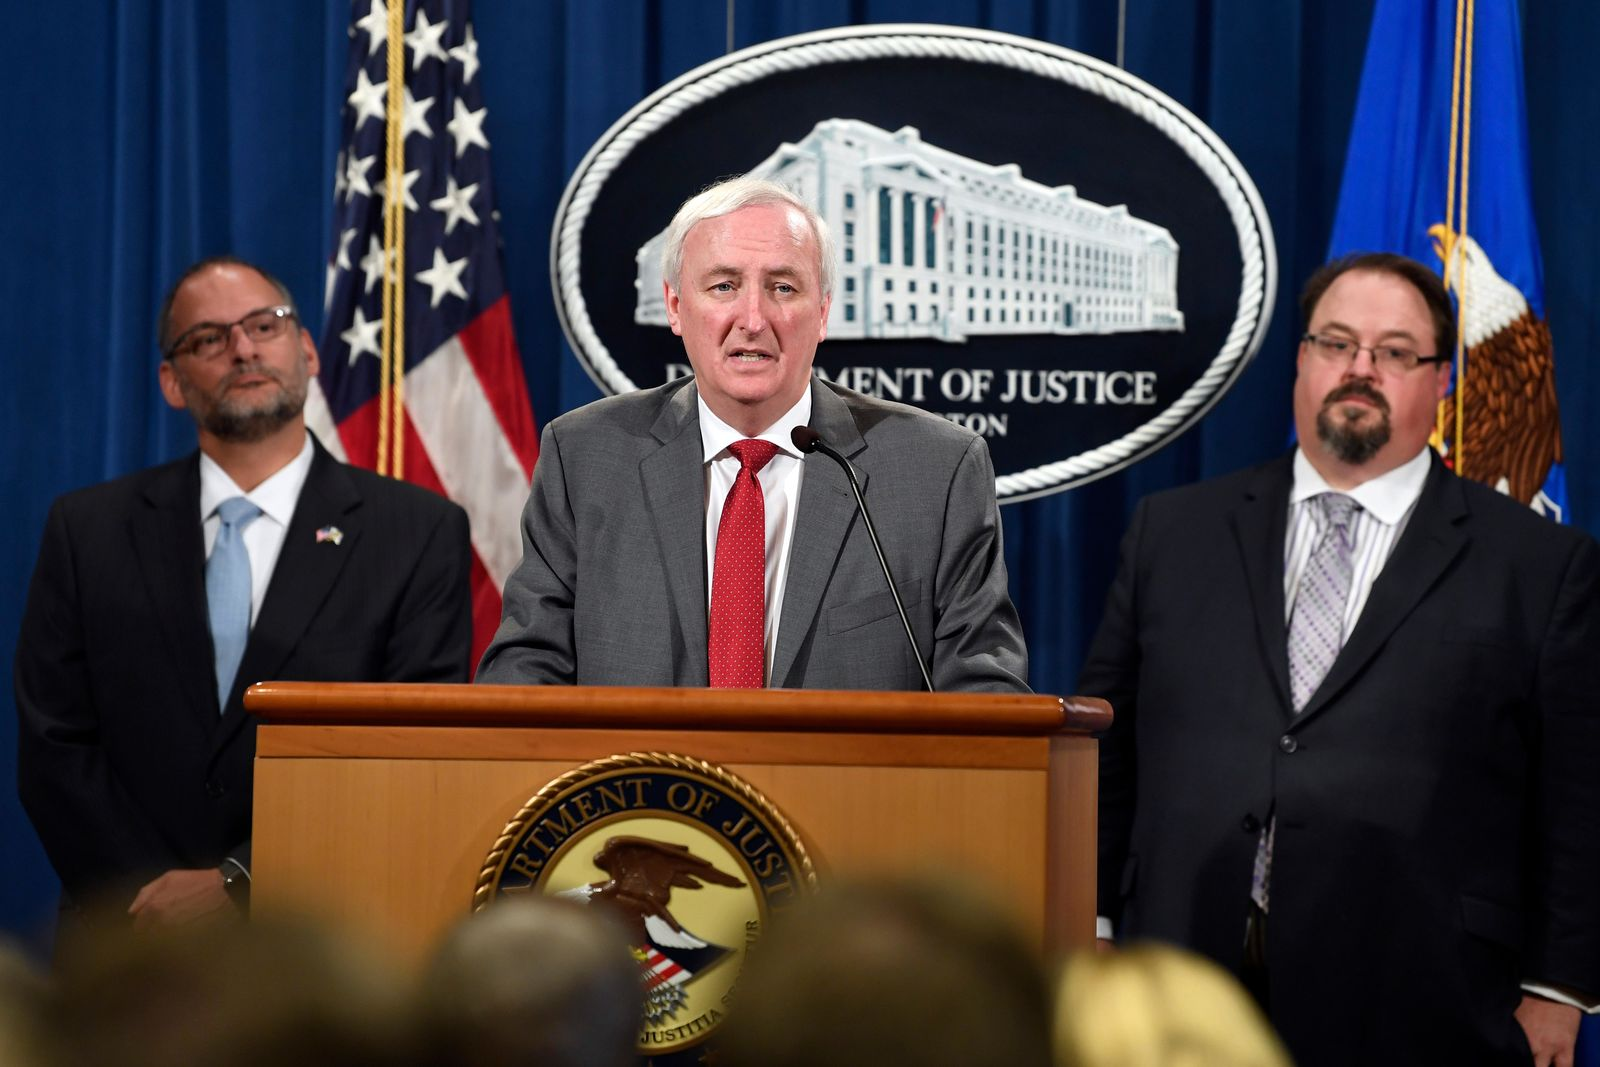 Deputy Attorney General Jeffrey Rosen, center, flanked by Hugh Hurwitz, left, the acting director of the Bureau of Prisons, and David Muhlhausen, director of the National Institute of Justice, speaks during a news conference at the Justice Department in Washington, Friday, July 19, 2019, on developments in the implementation of the First Step Act. . (AP Photo/Susan Walsh)